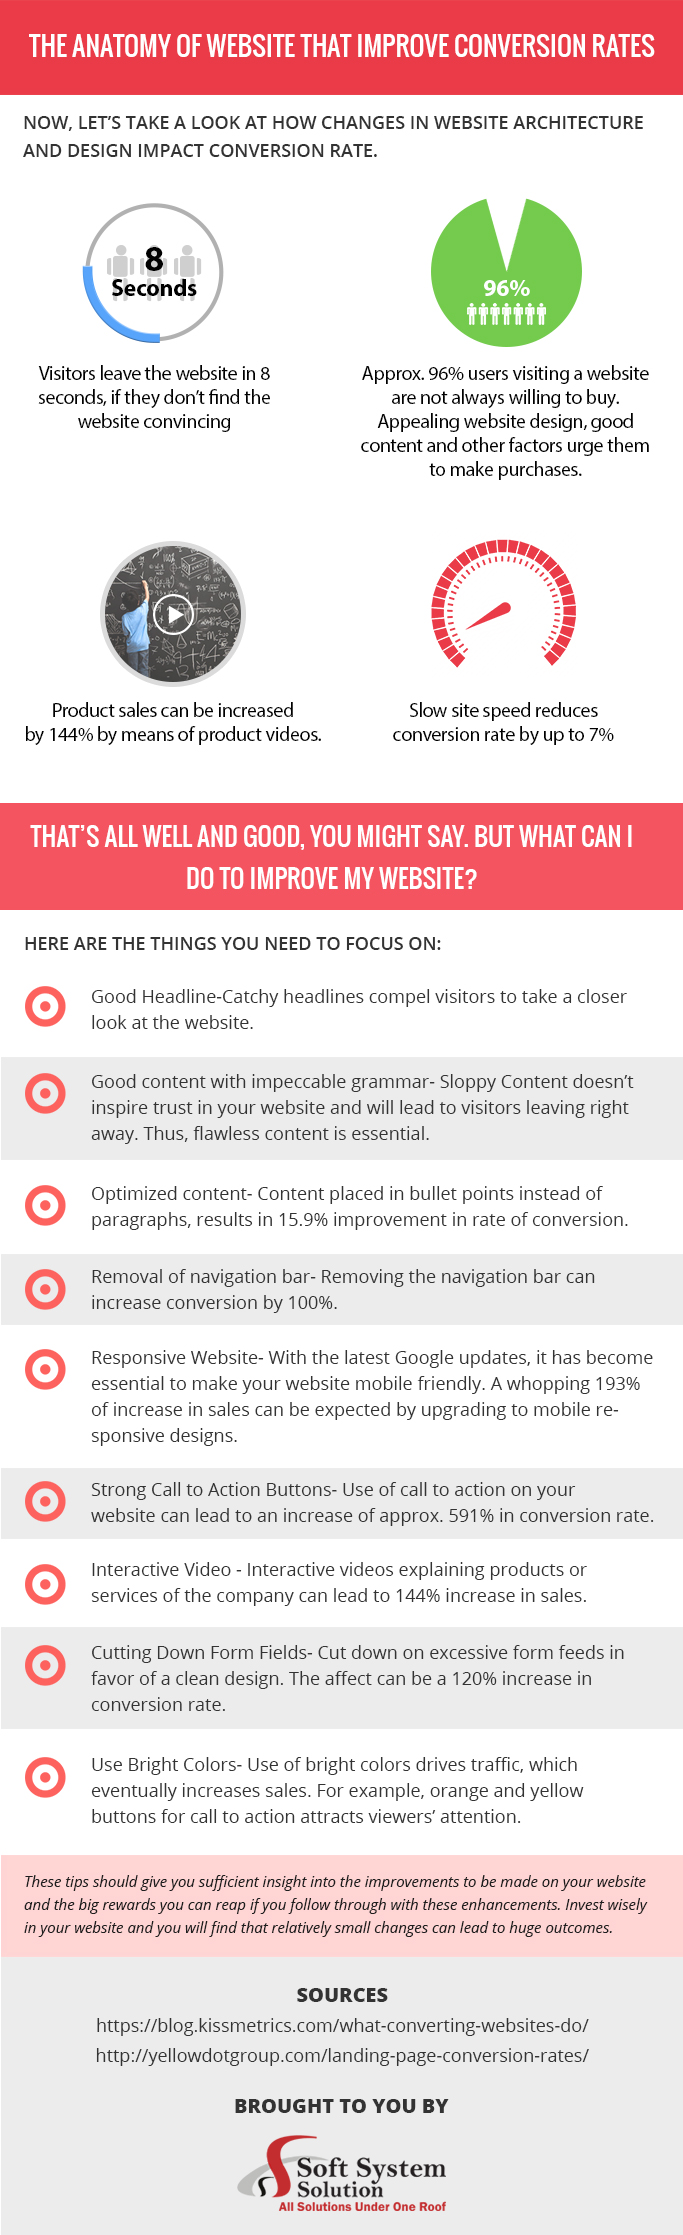 The anatomy of website that improve conversion rates